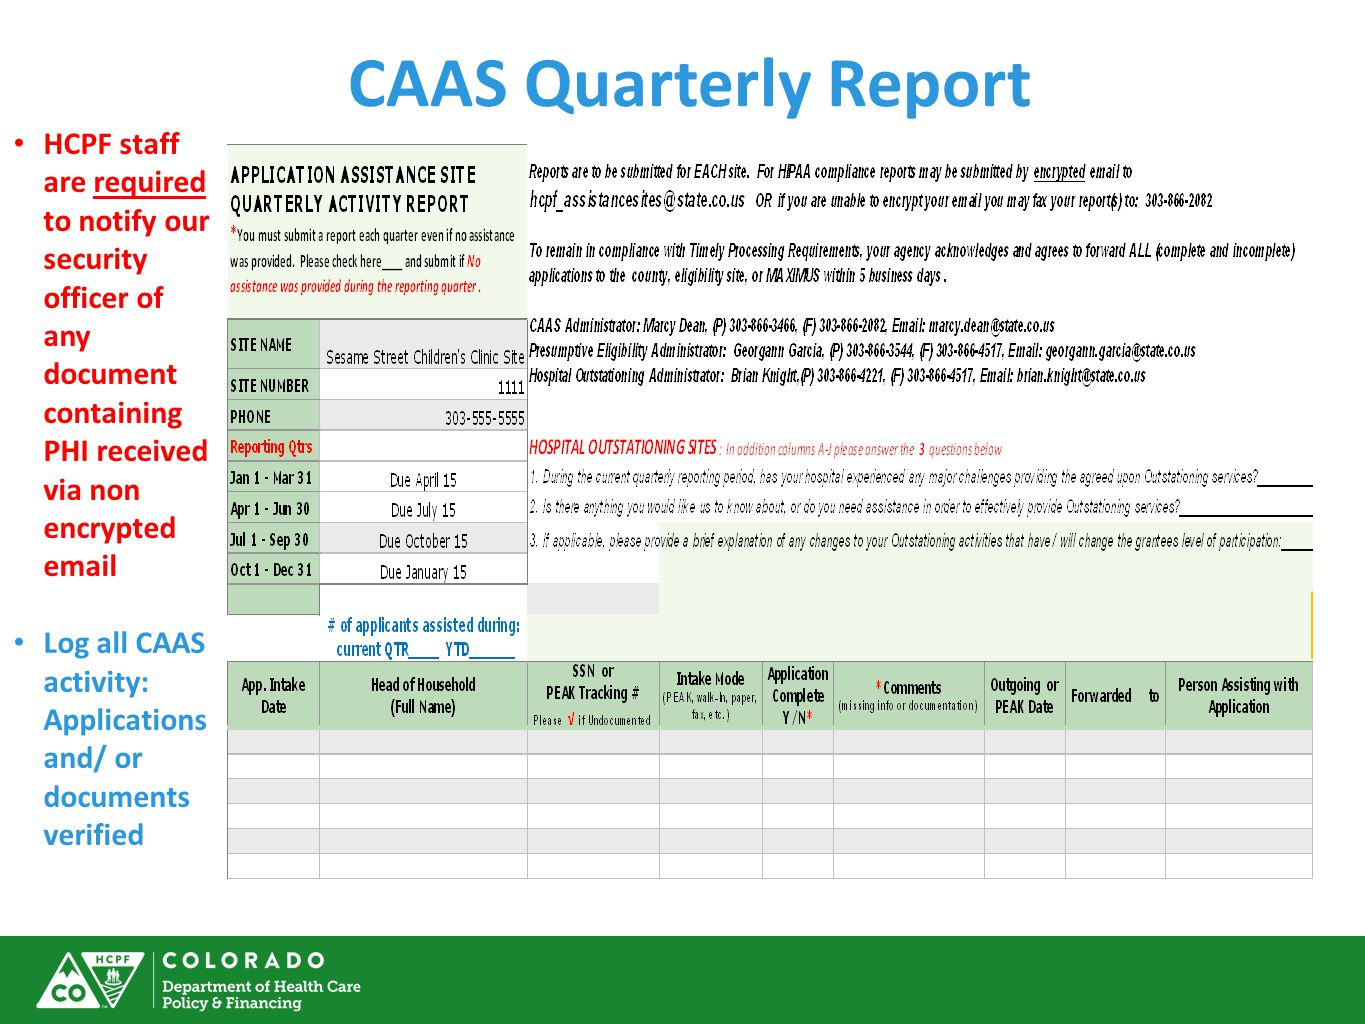 CAAS Quarterly Report HCPF staff are required to notify our security officer of any document containing PHI received via non encrypted email Log all CAAS activity: Applications and/ or documents verified